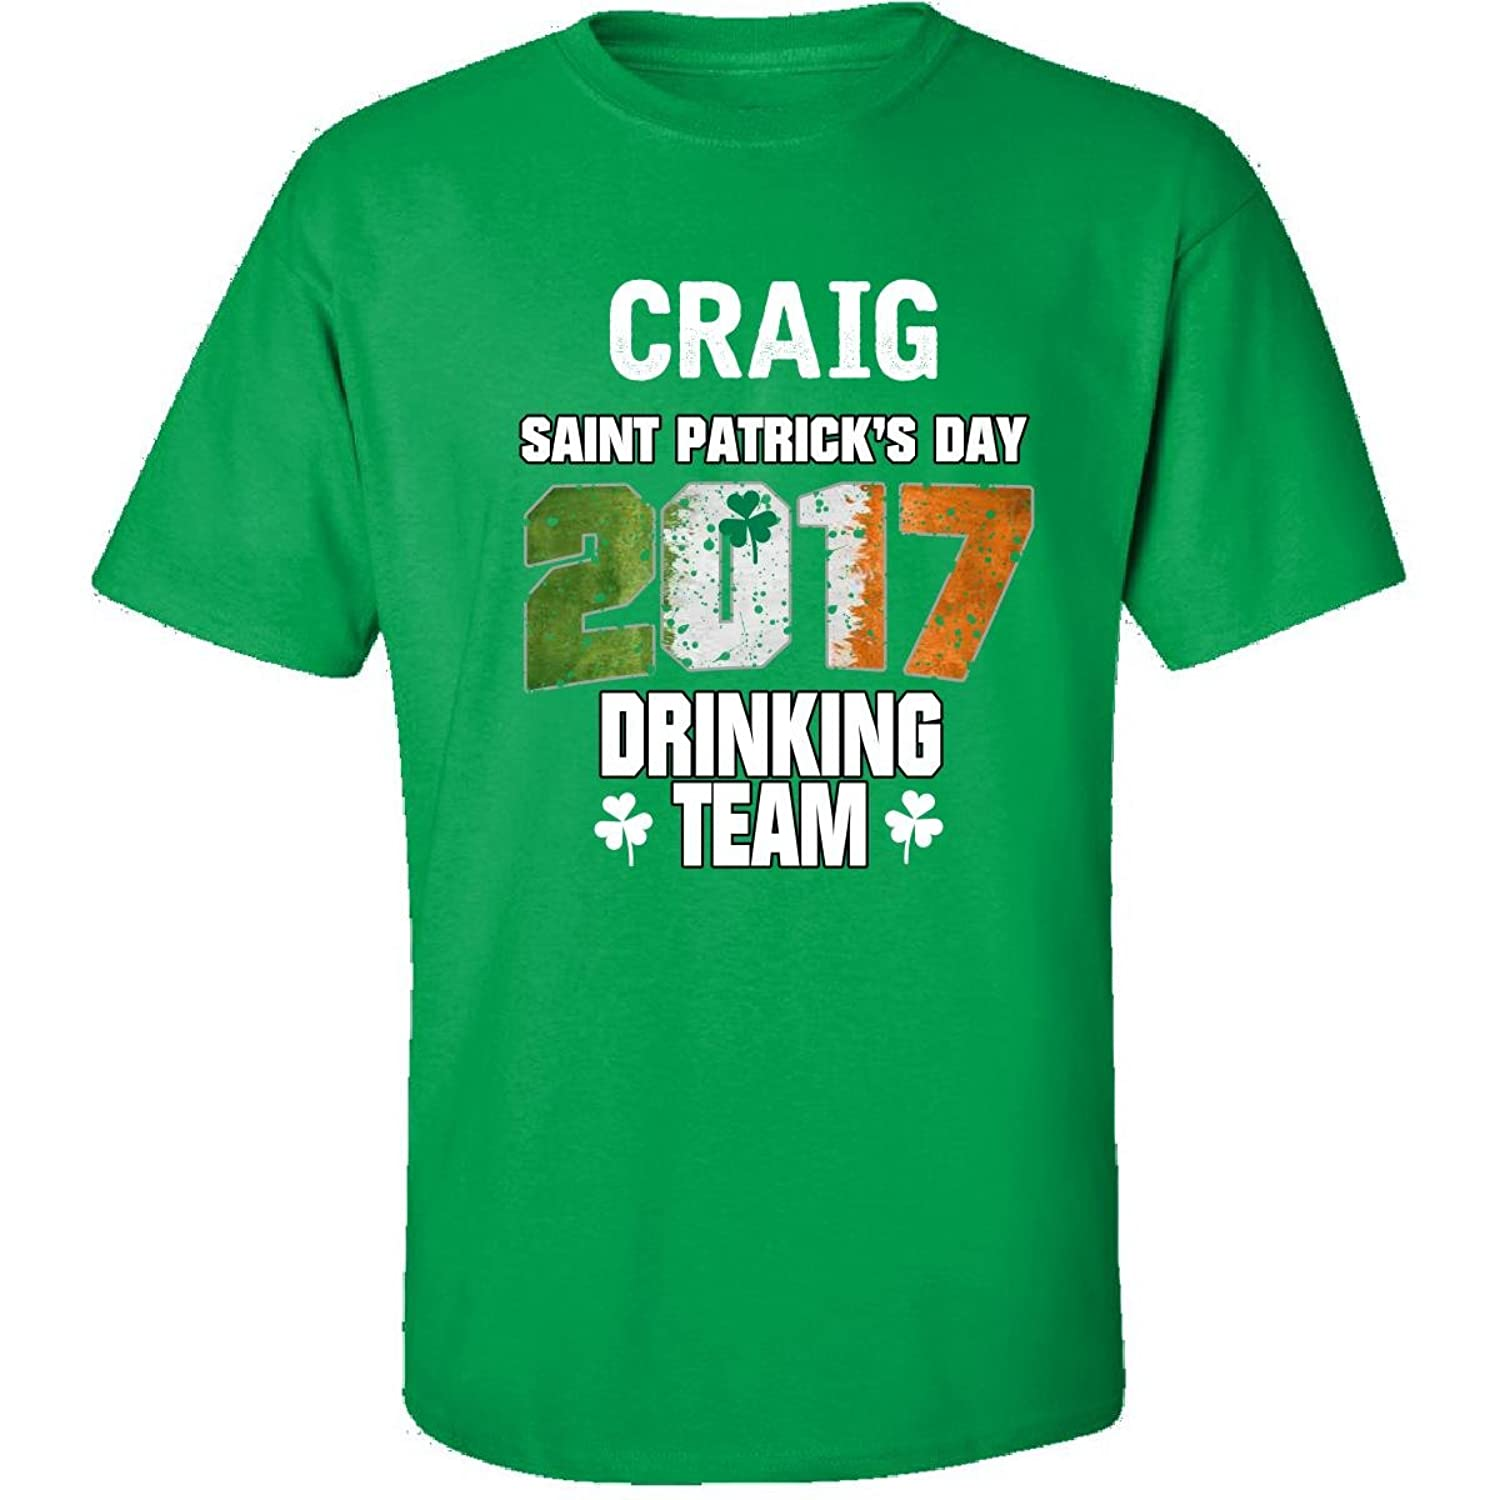 Craig Irish St Patricks Day 2017 Drinking Team - Adult Shirt